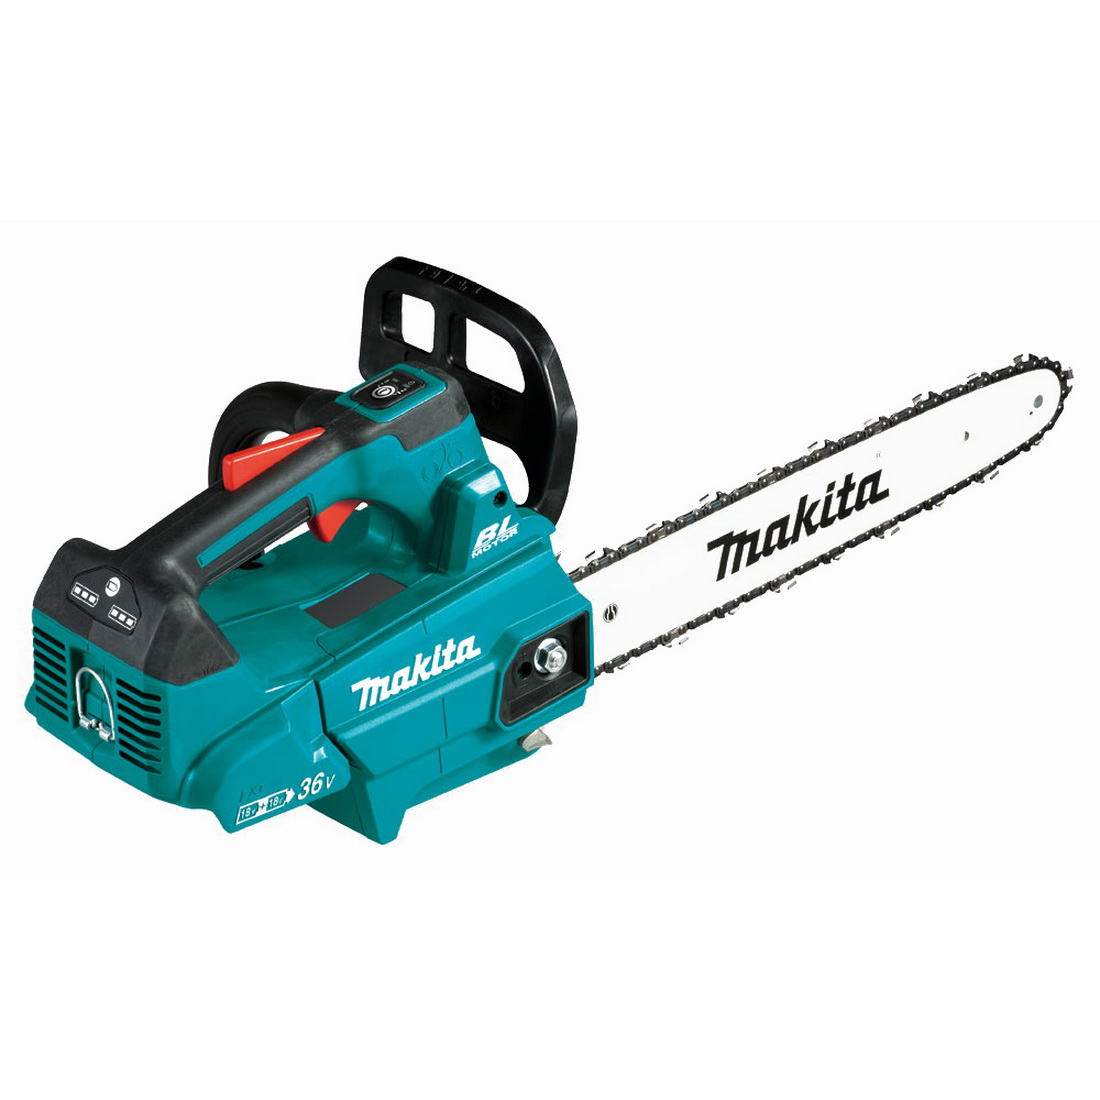 2 x 18V 350mm Lithium-Ion Brushless Top Handle Chainsaw Skin